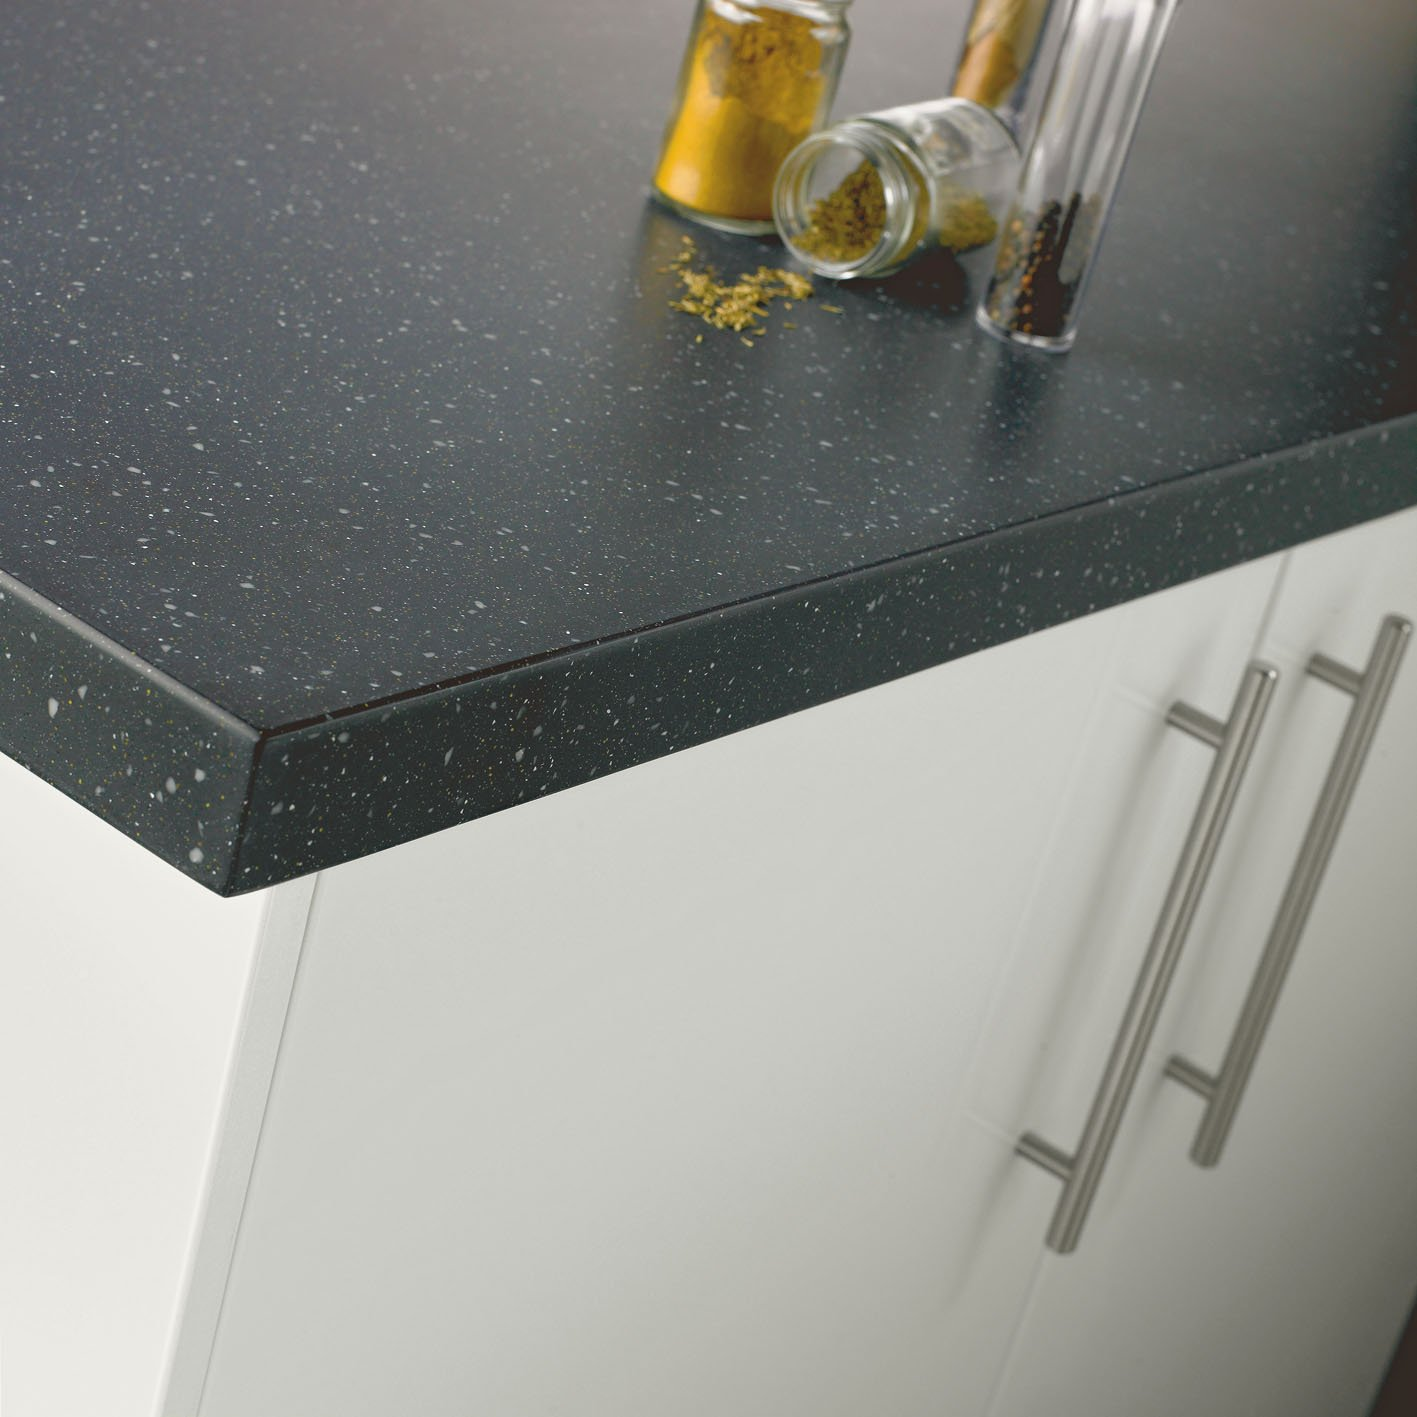 How To Replace a Worktop